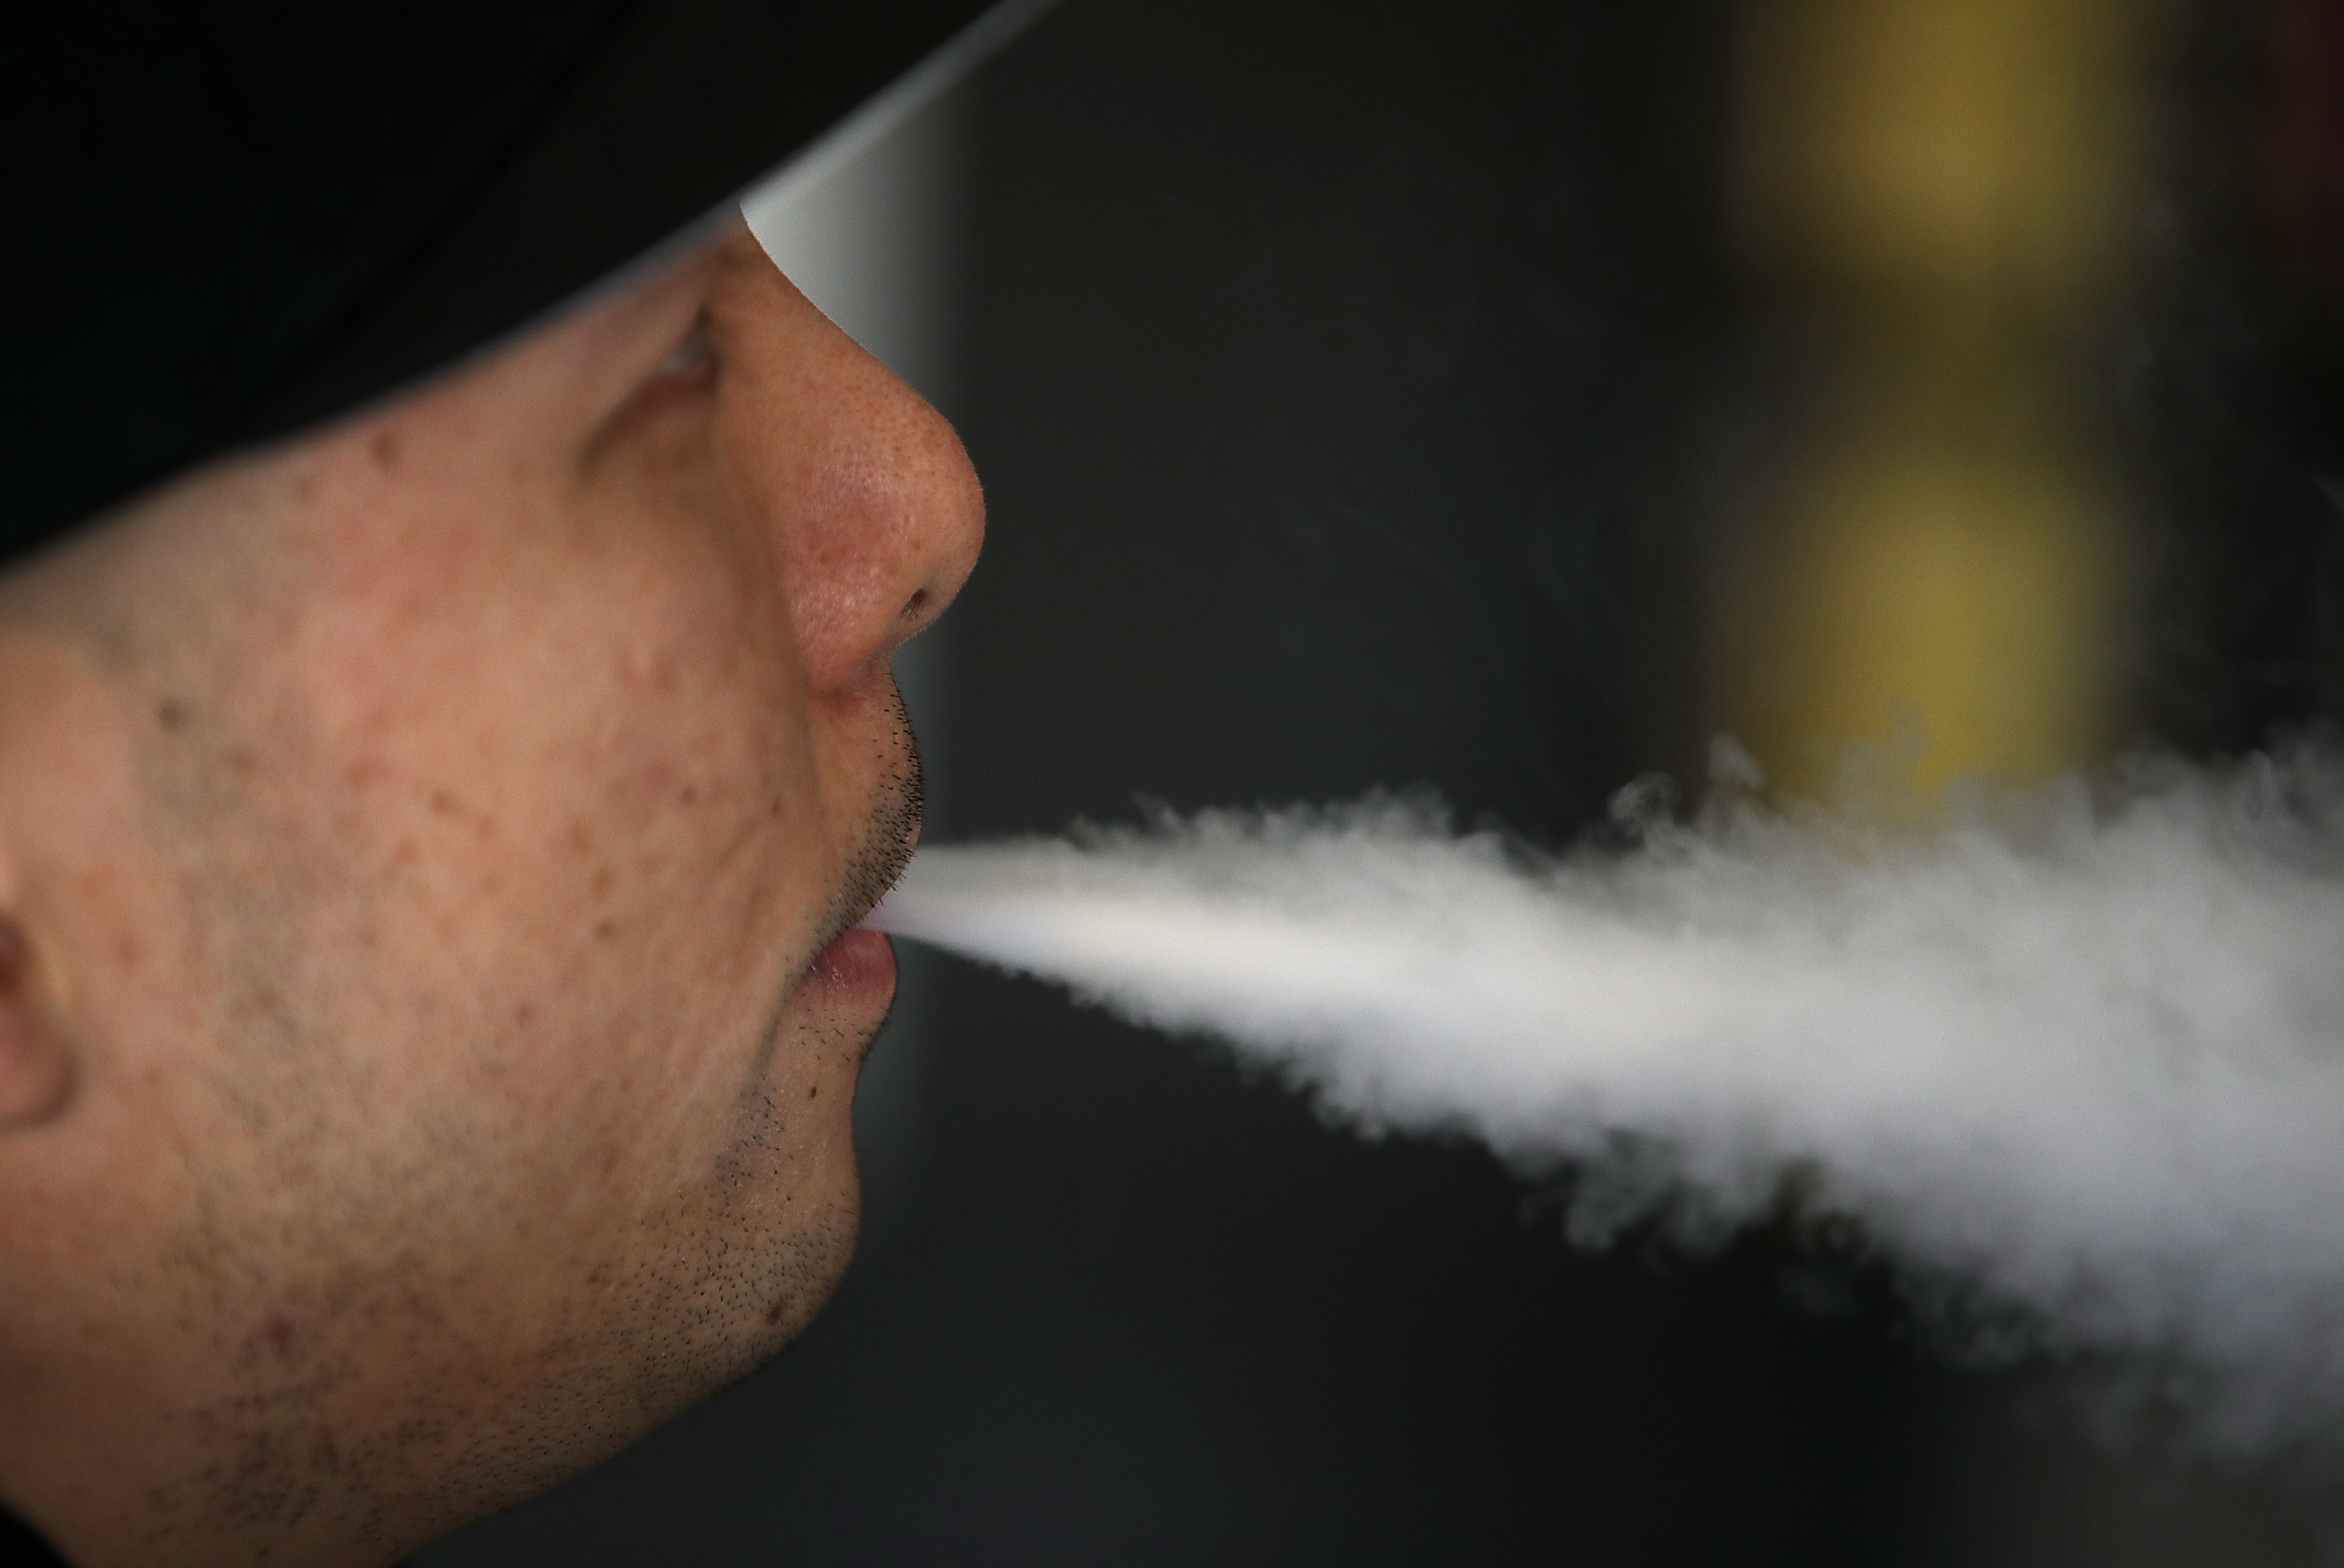 Research shows vaping-related lung disease may be caused by chemical exposure